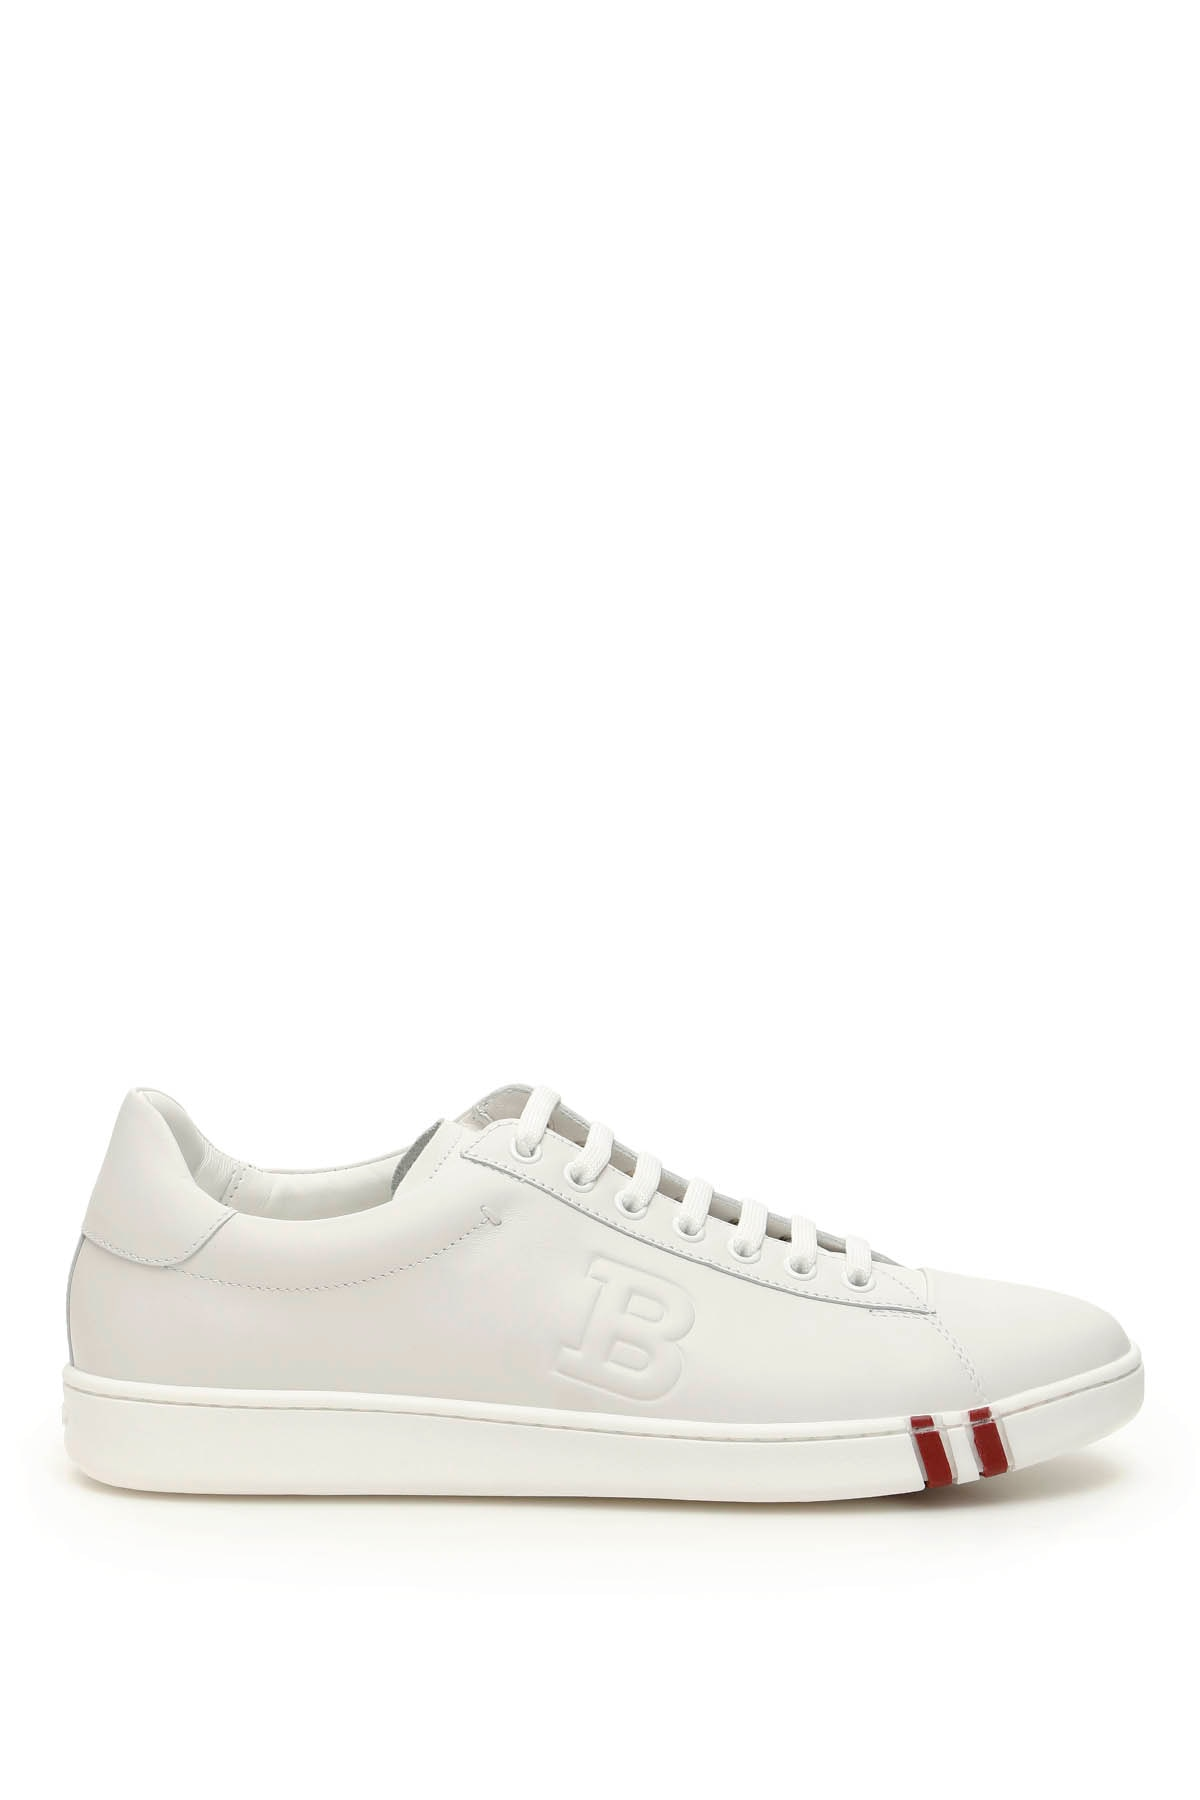 BALLY ASHER LEATHER SNEAKERS 10 White, Red Leather